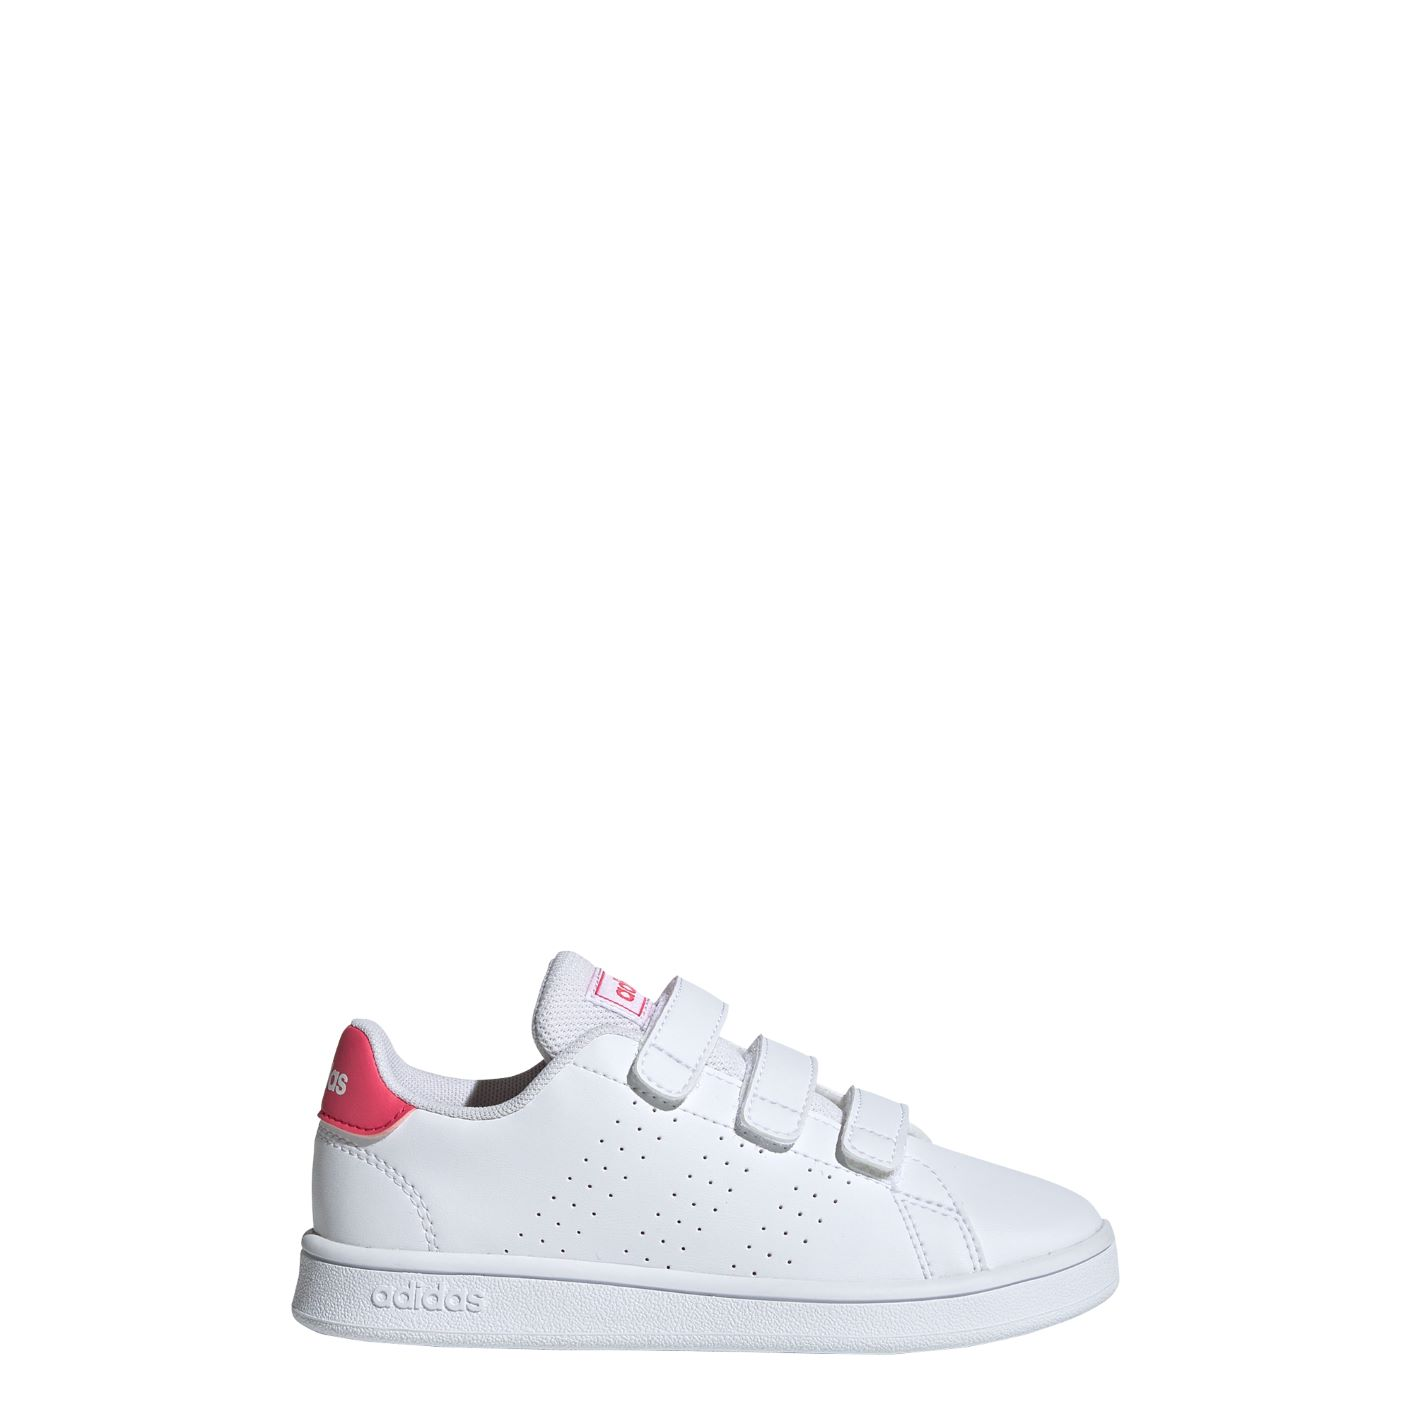 DEPORTIVO ADVANTAGE C SINTÉTICO FTWR WHITE/REAL PINK S18/FTWR WHITE